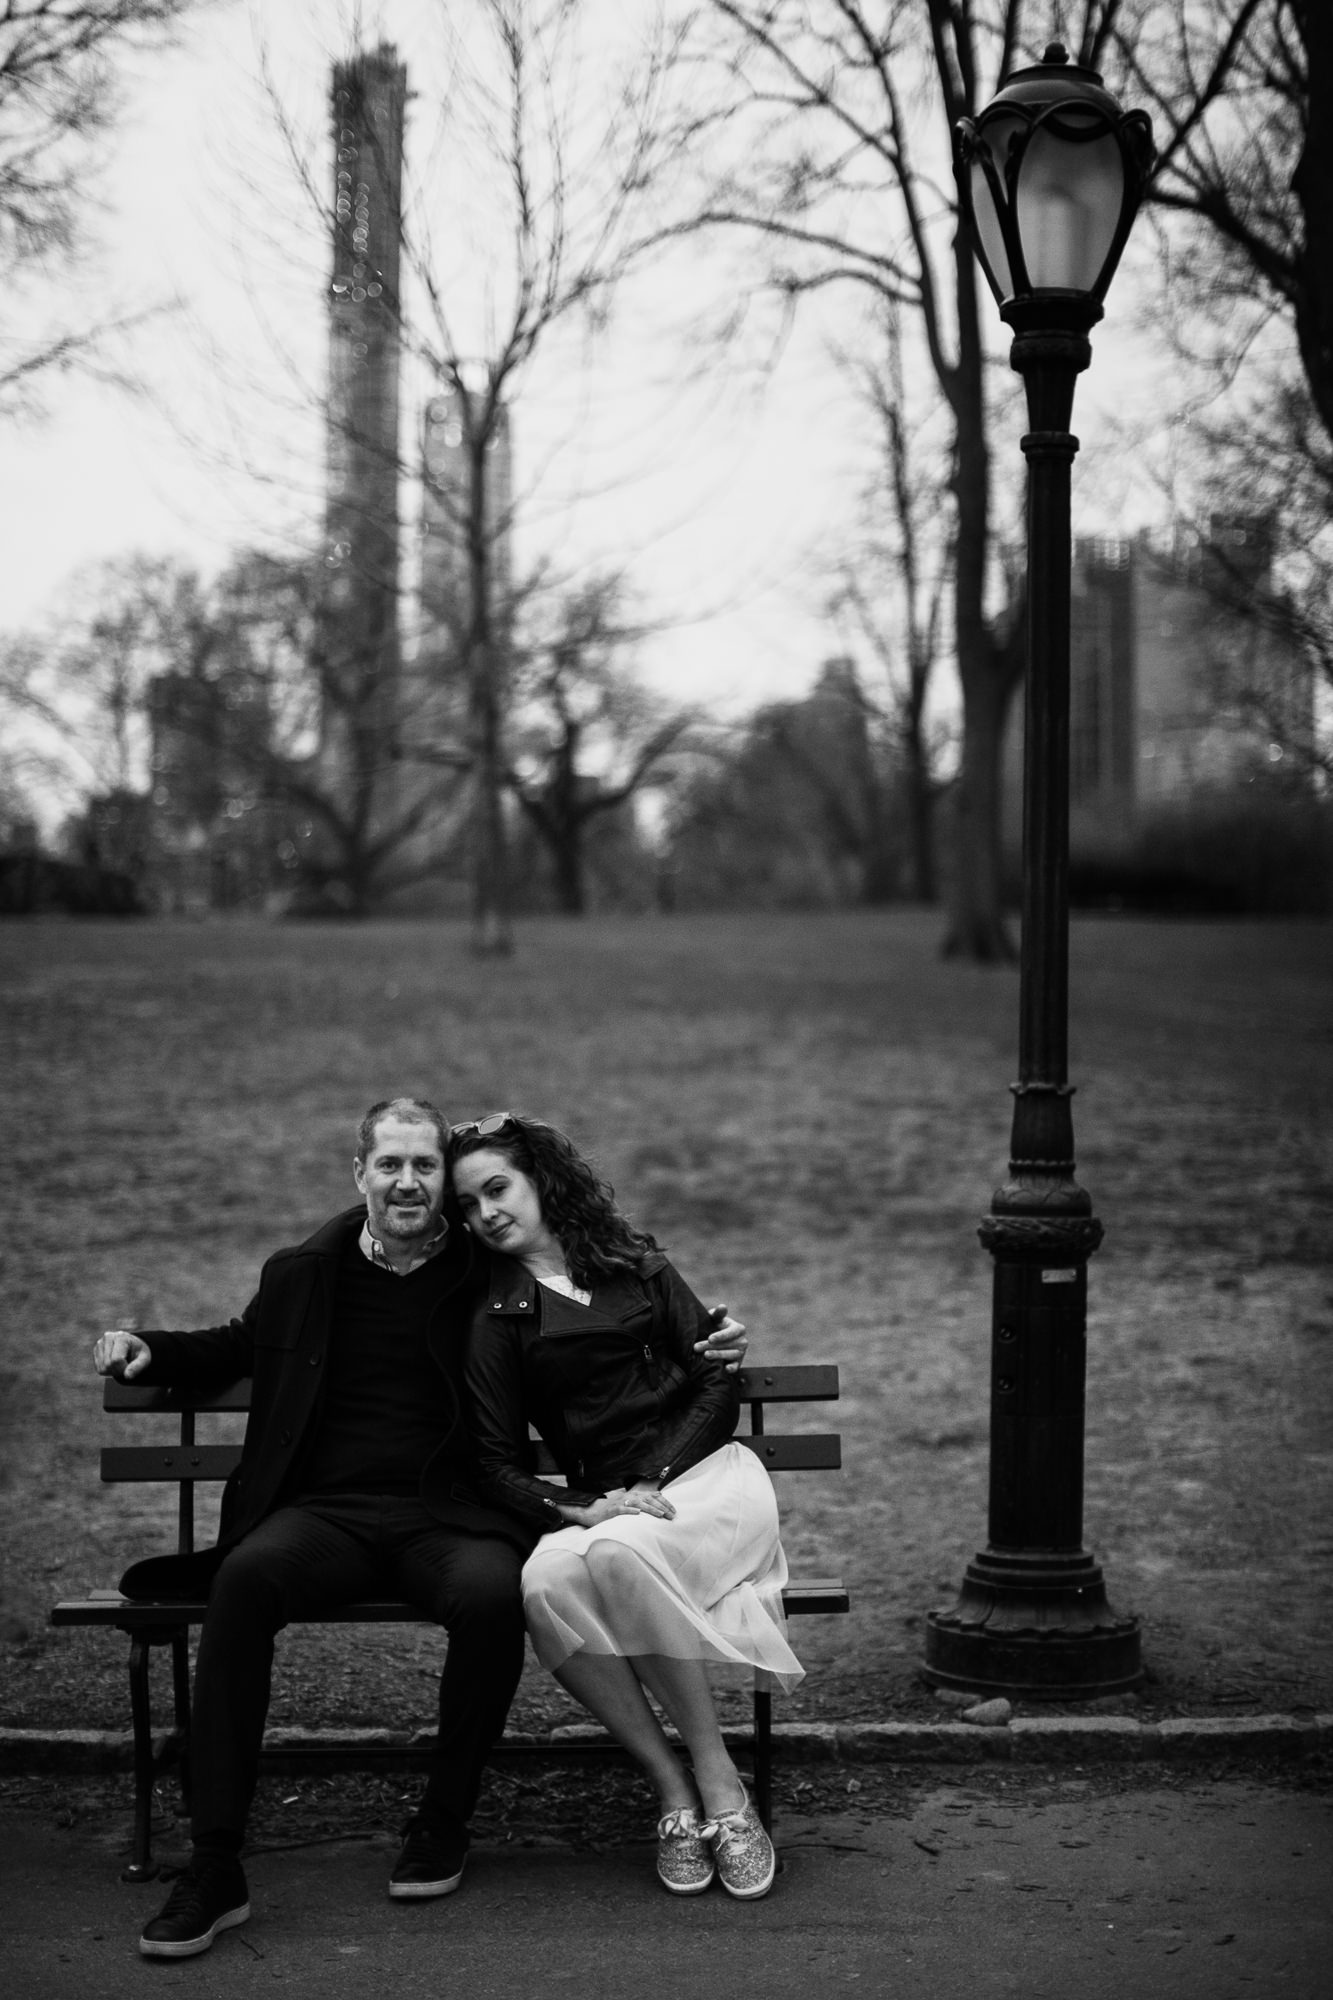 nyc_wedding_photographer_alfonso_flores-45.jpg